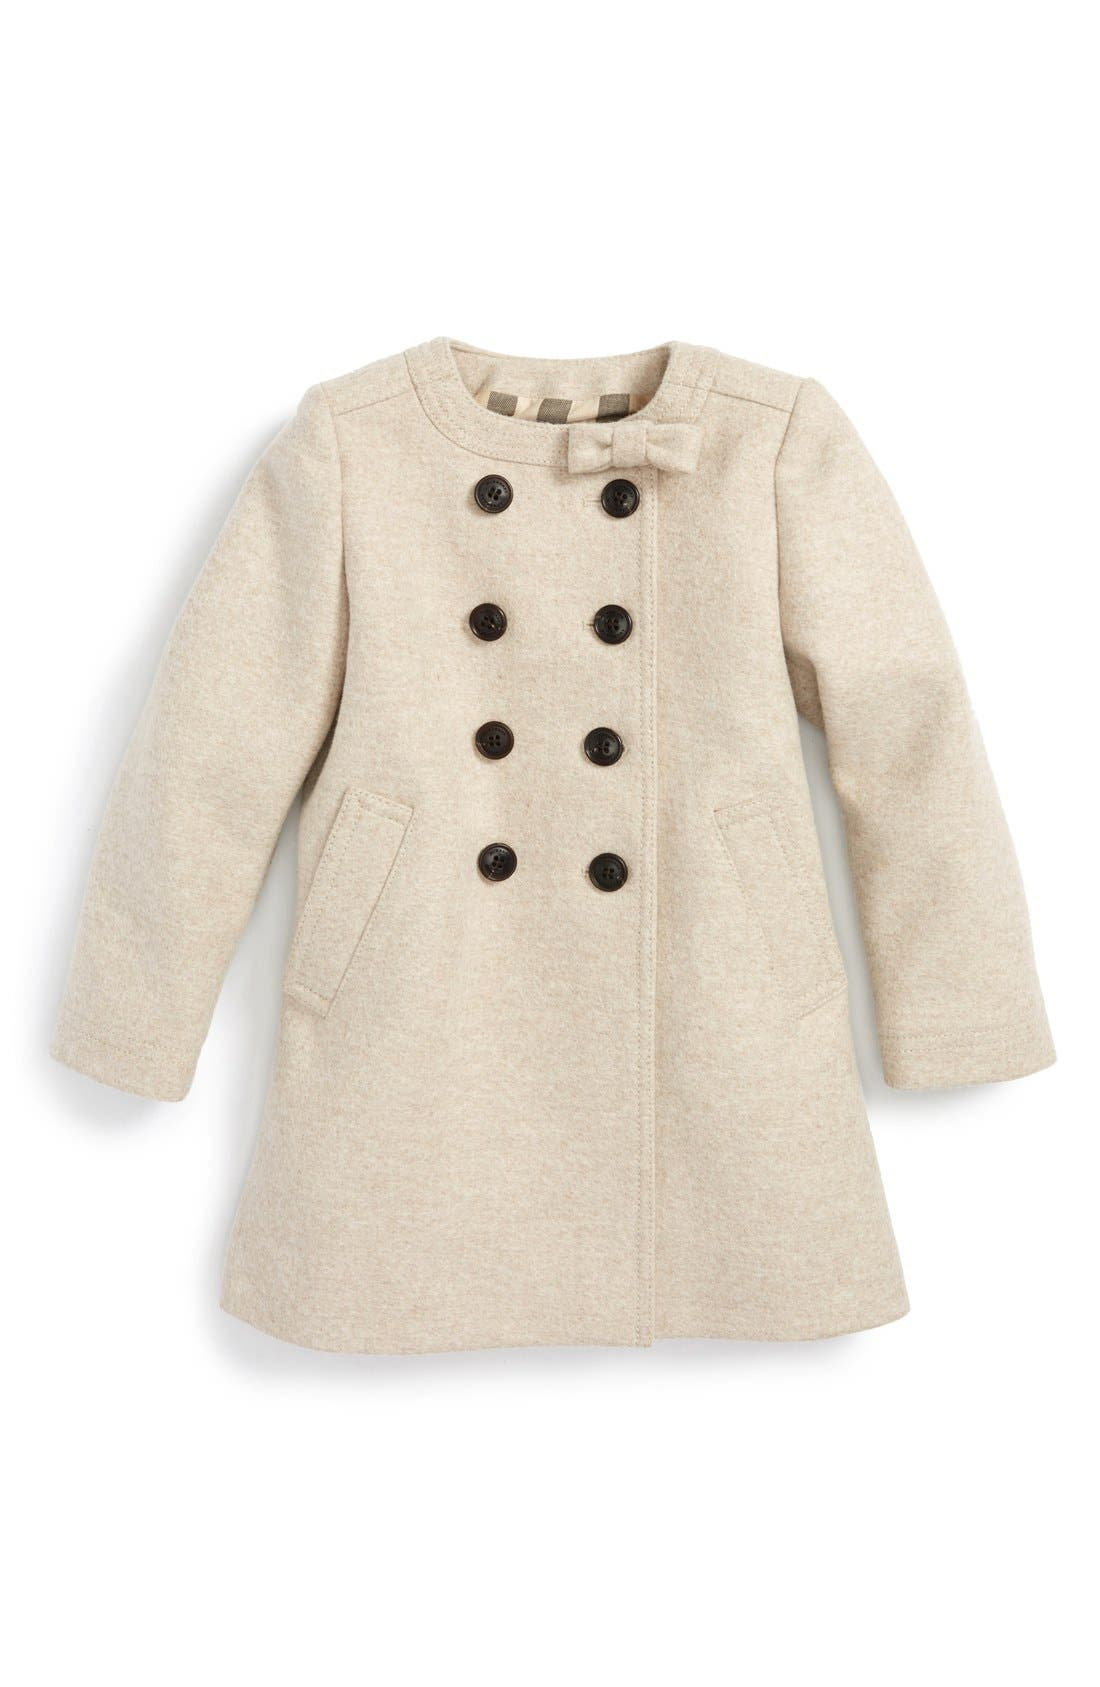 Main Image - Burberry 'Rose' Wool Blend A-Line Coat (Baby Girls)